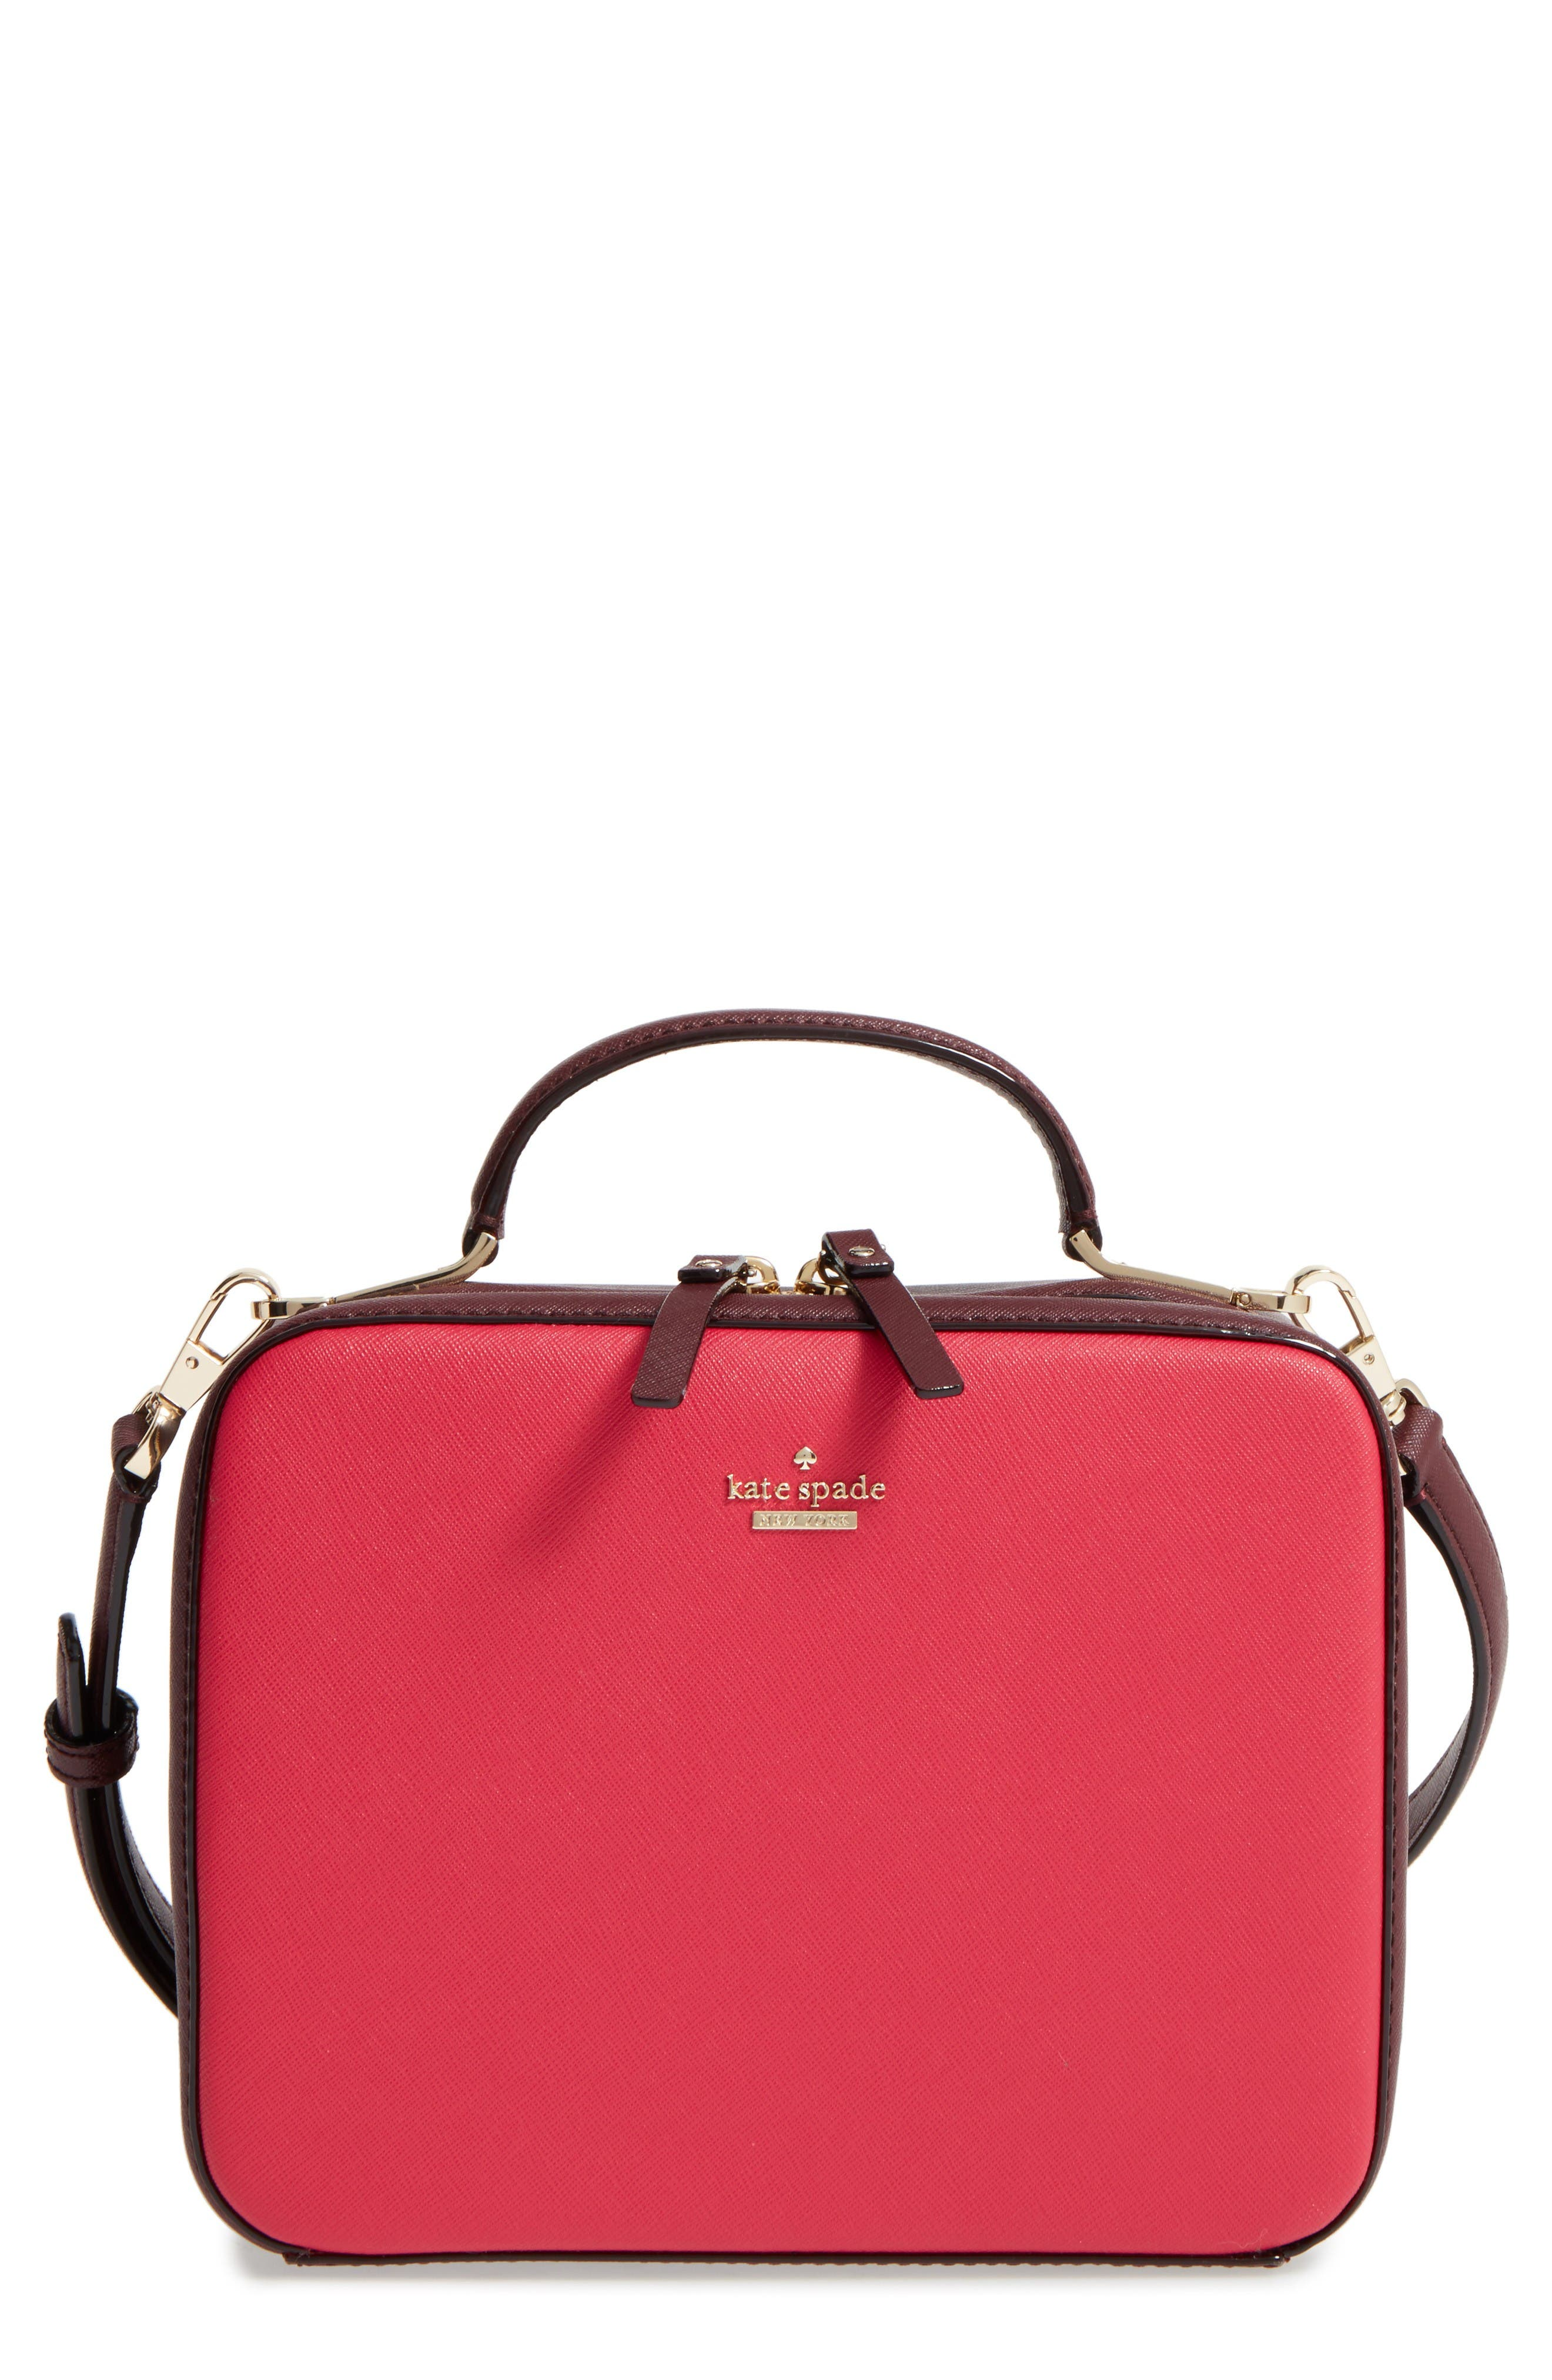 Alternate Image 1 Selected - kate spade new york cameron street - casie leather top handle satchel